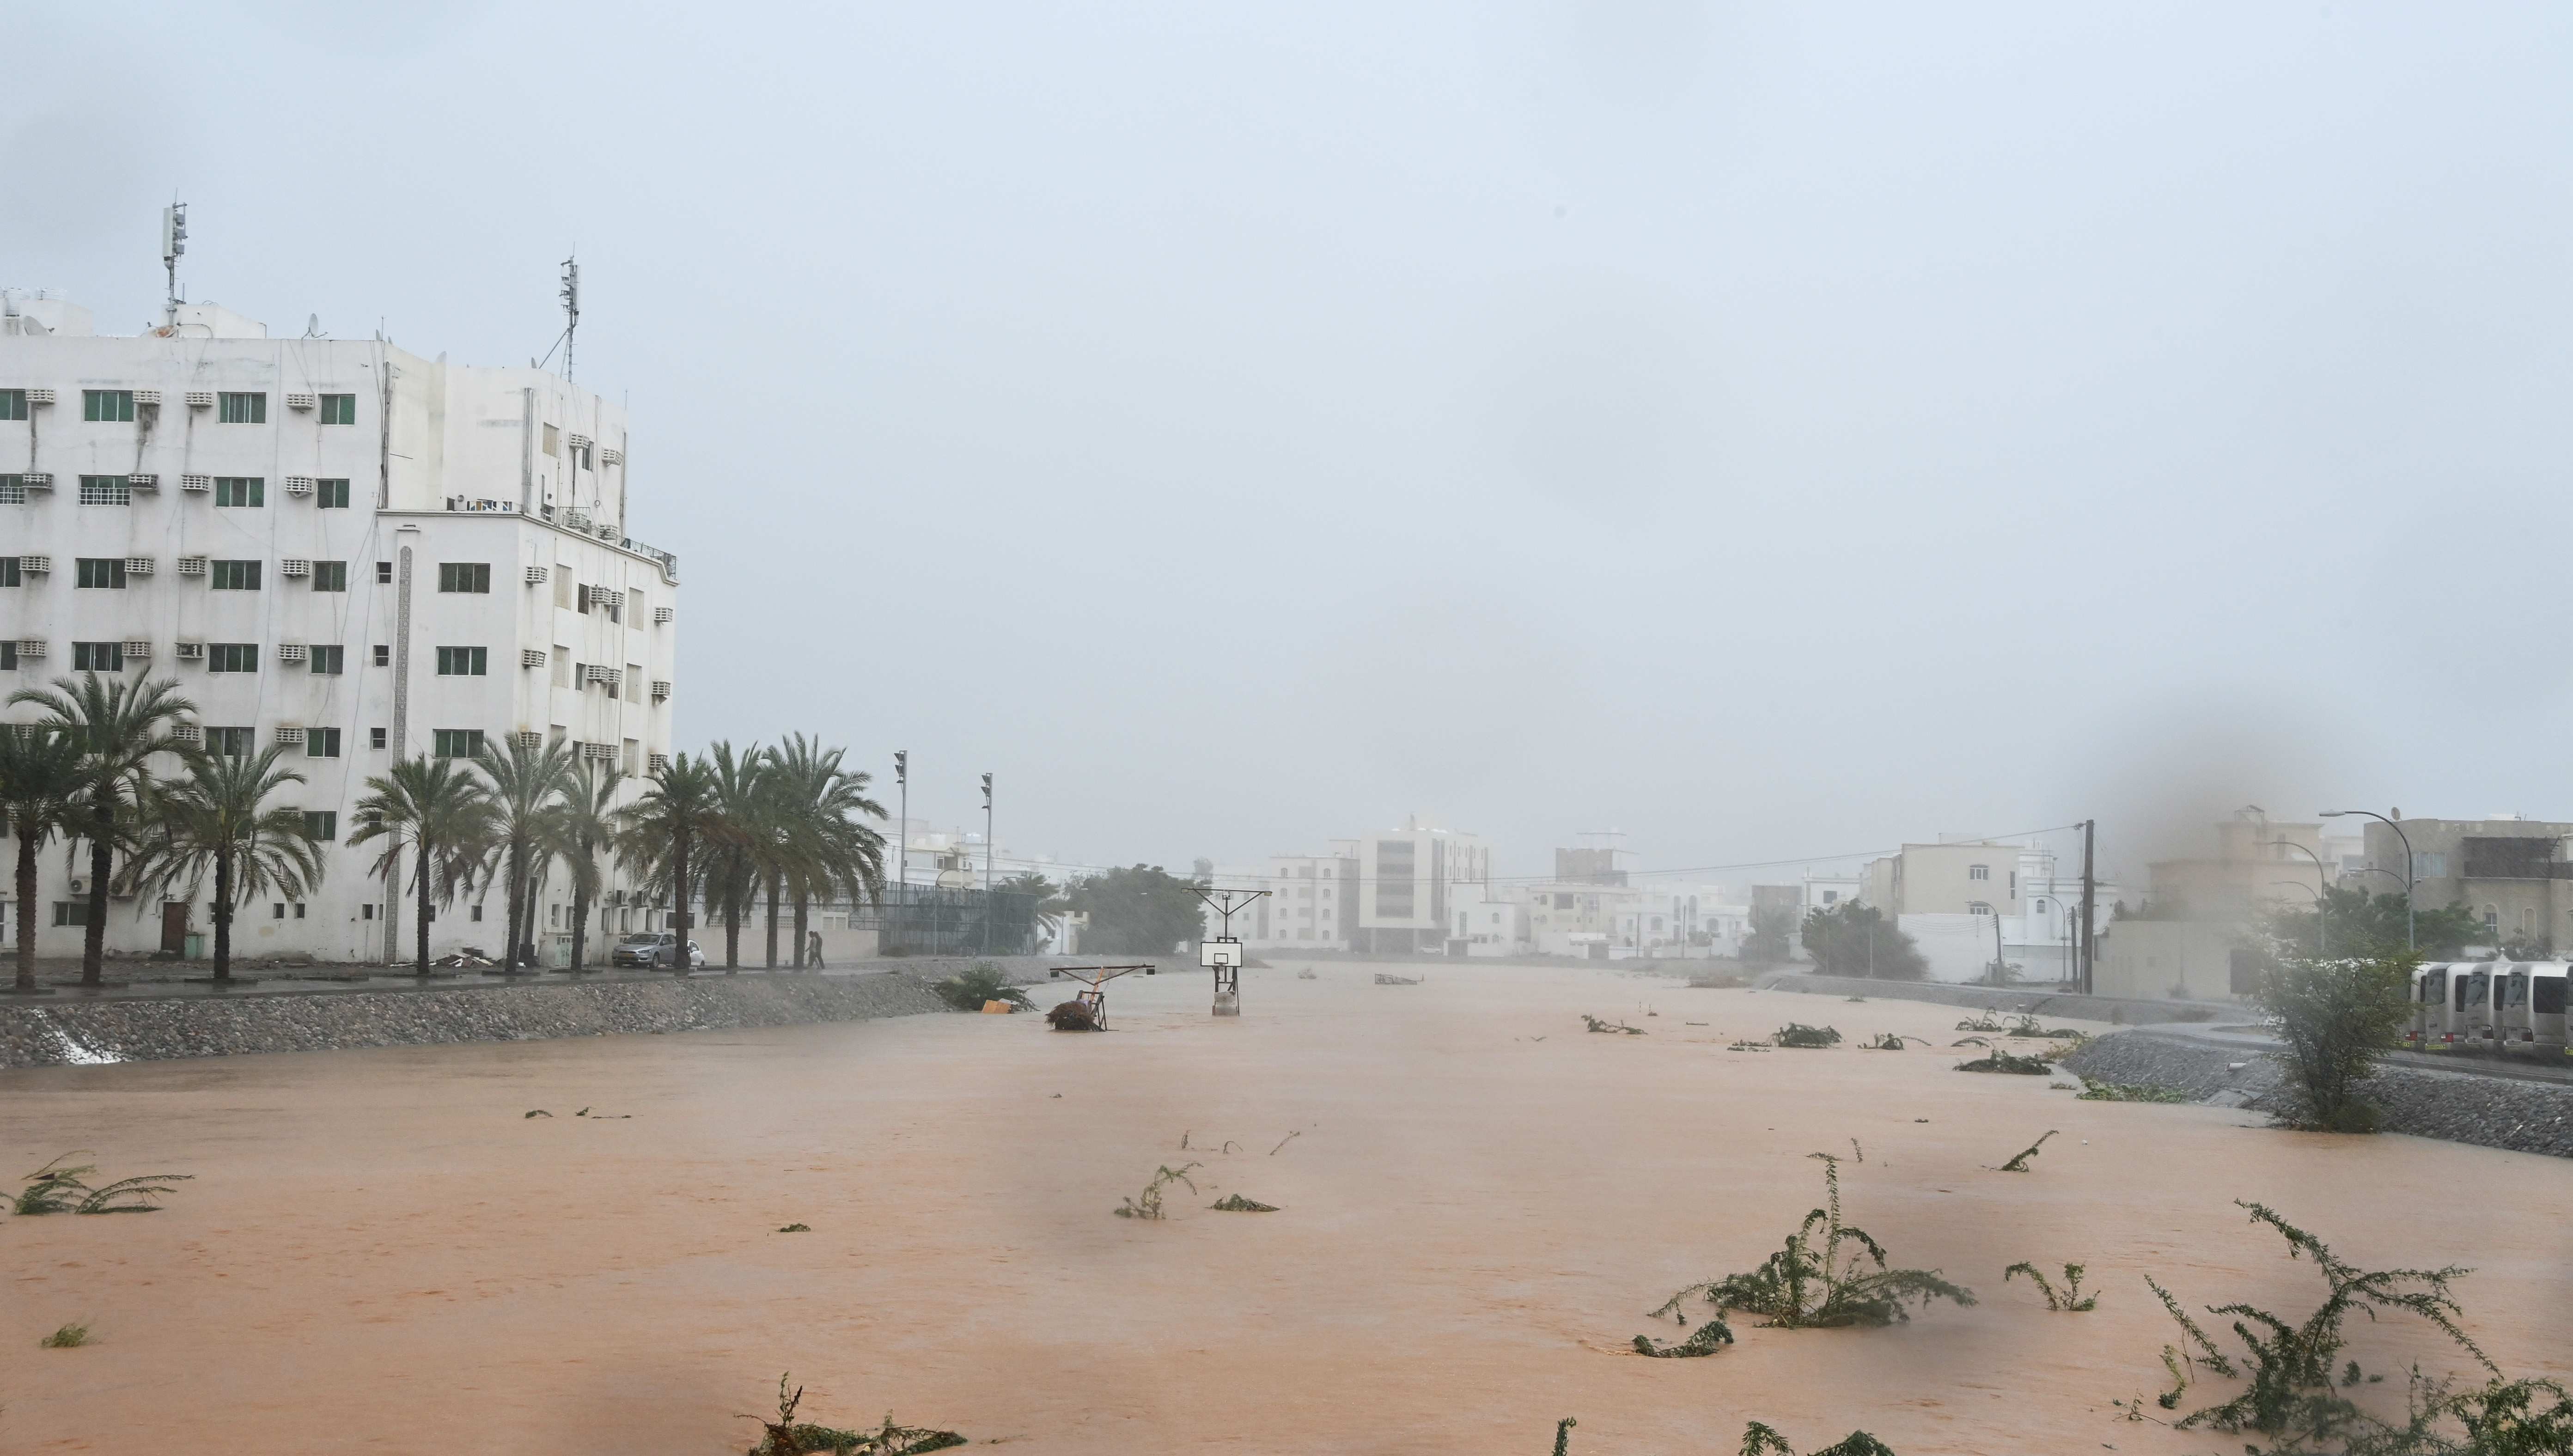 Flooded streets are seen as Cyclone Shaheen makes landfall in Muscat Oman, October 3, 2021. REUTERS/Sultan Al Hassani